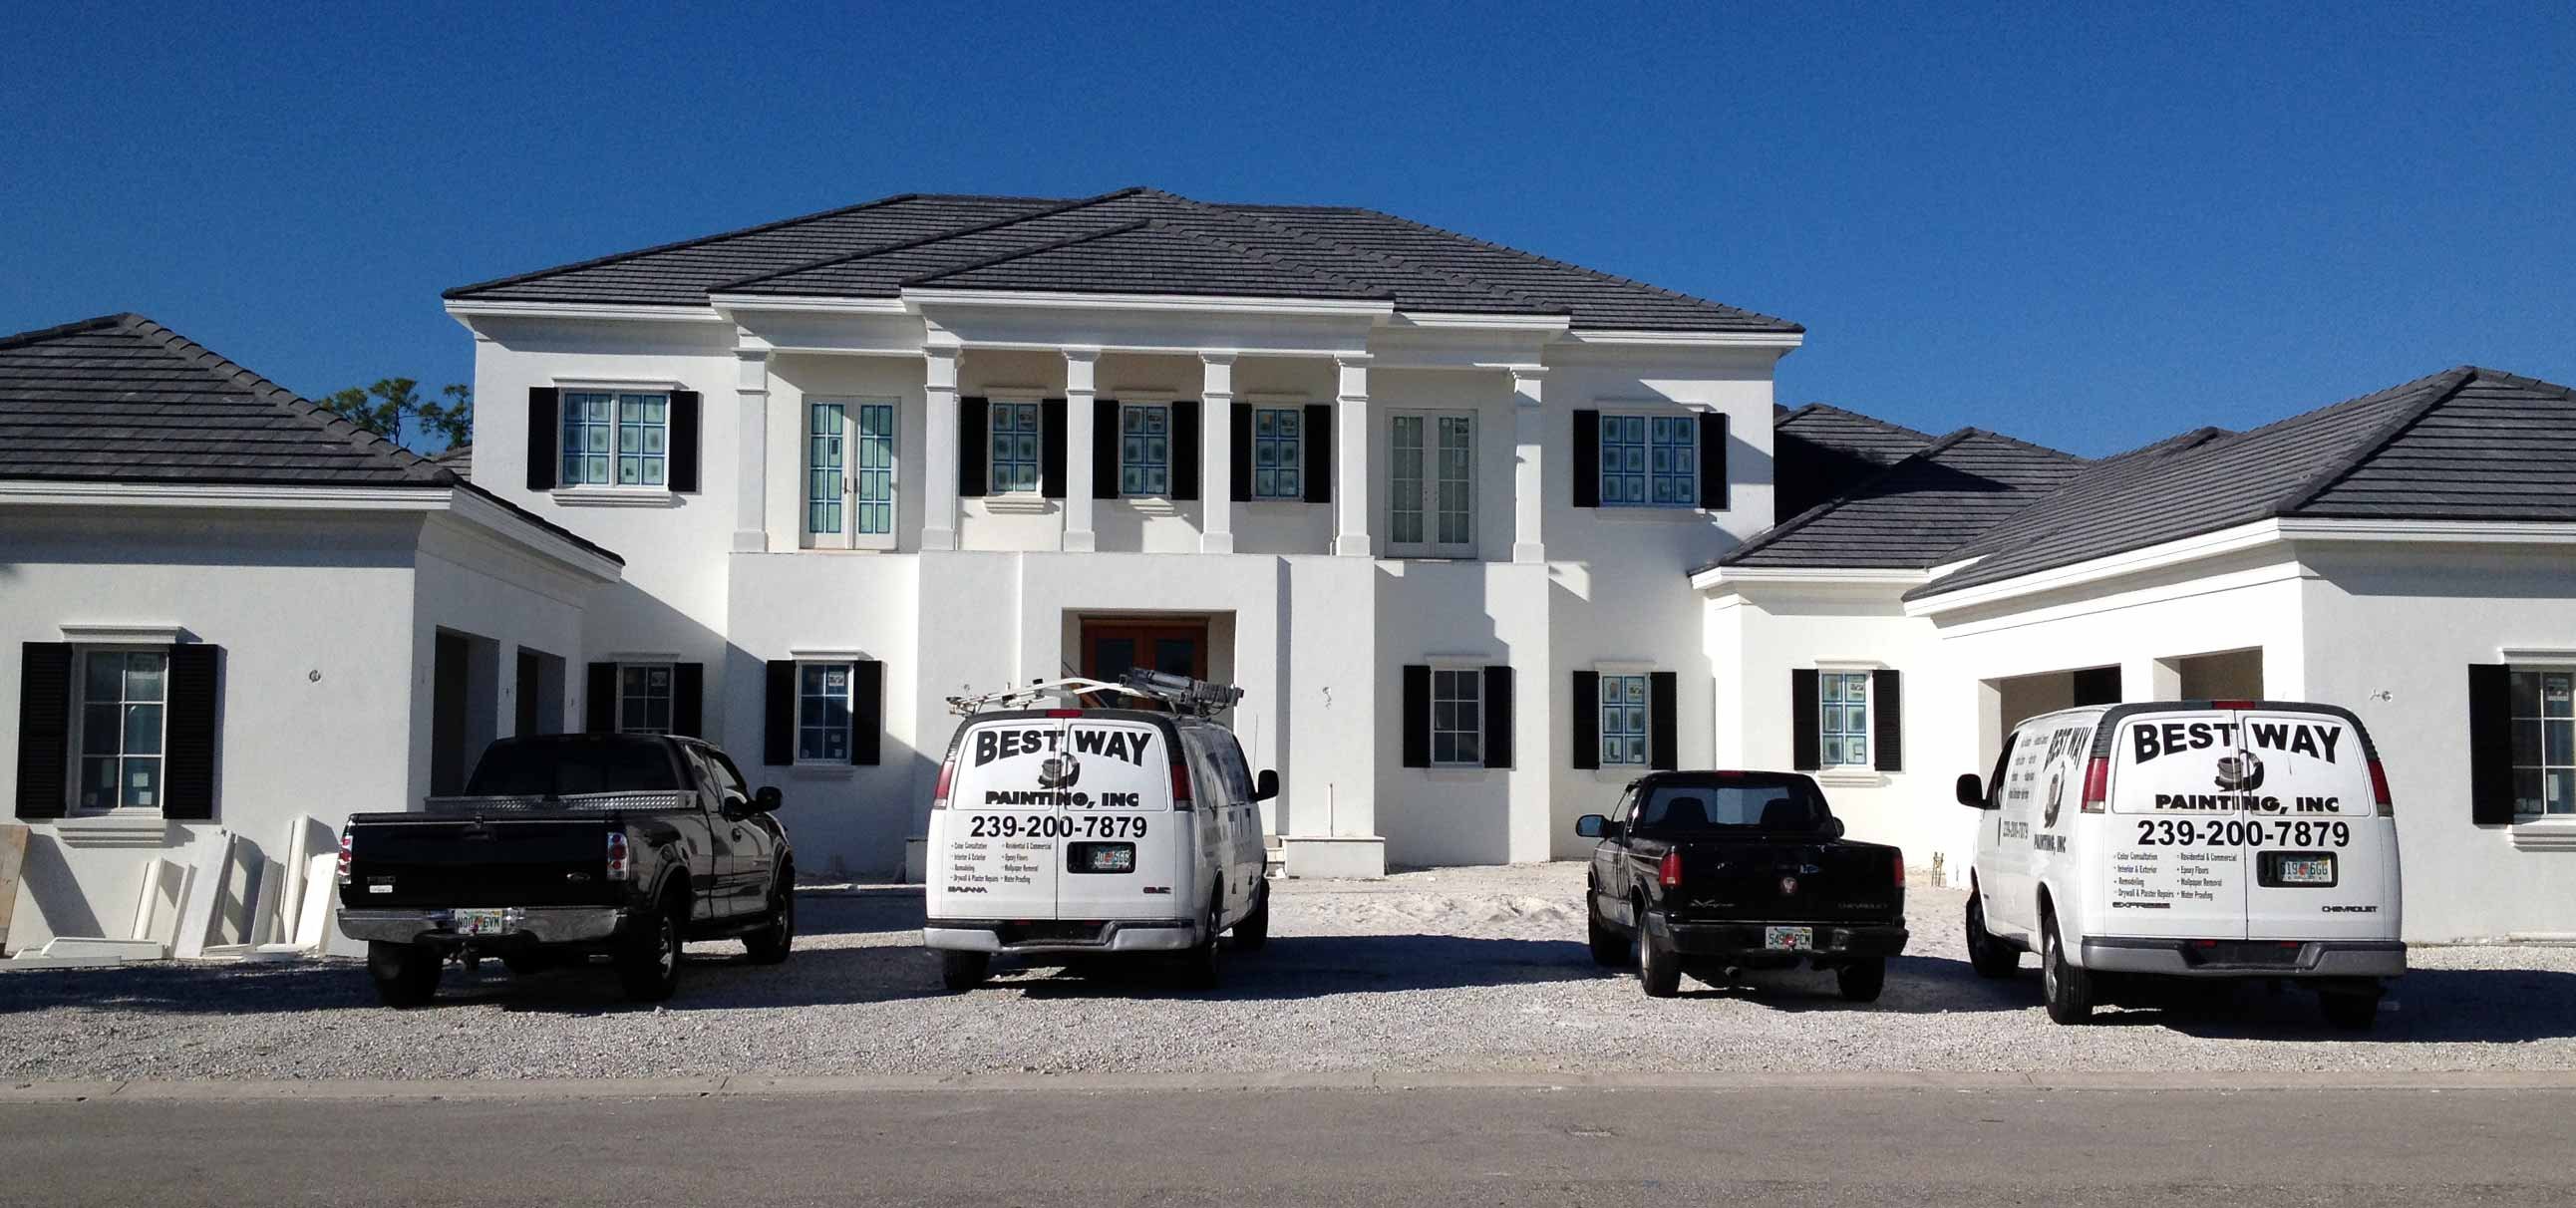 Best Way Painting, LLC. company vehicles outside of Naples Florida home | Exterior Home Painting Best Way Painting, LLC.